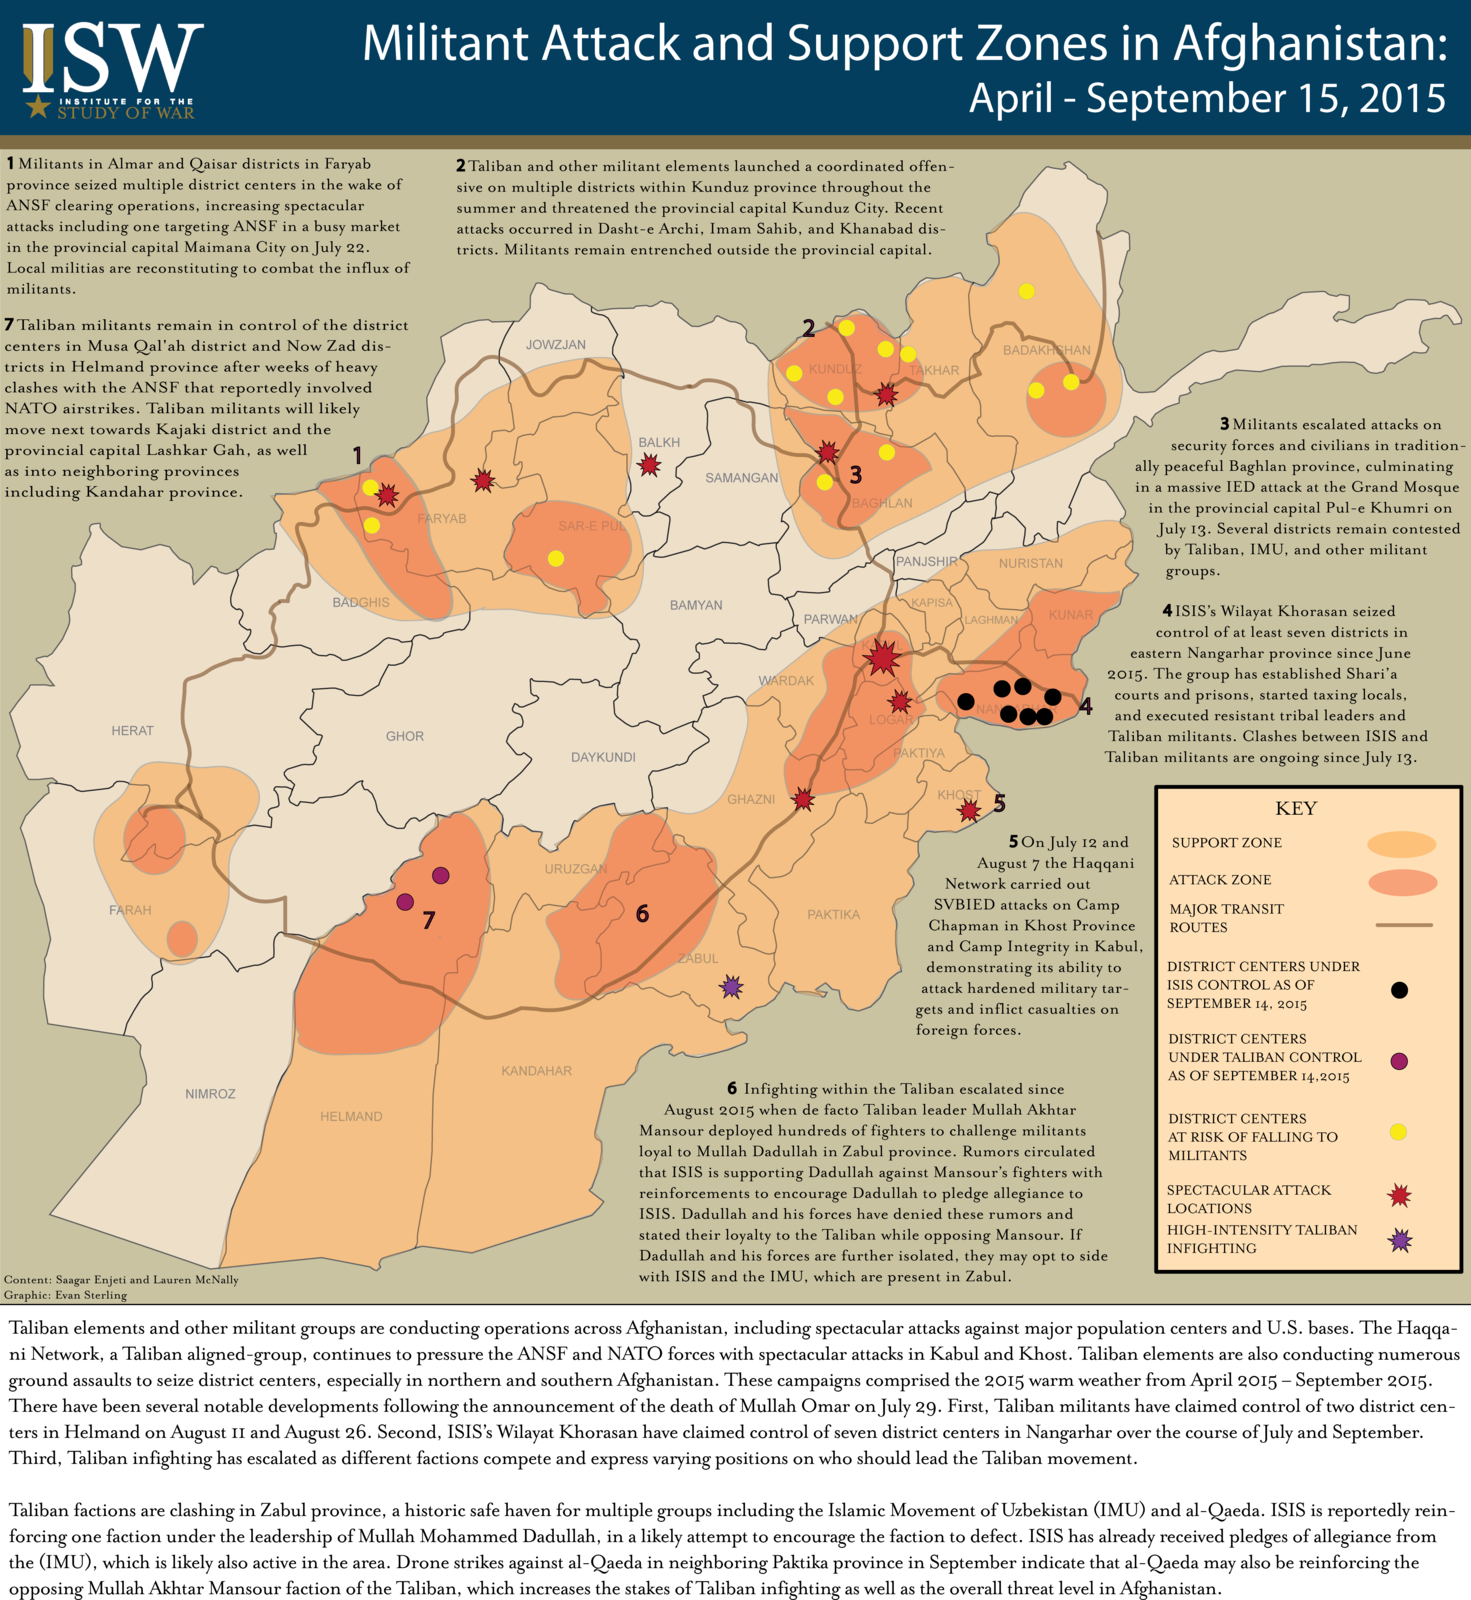 Militant Attack and Support Zones in Afghanistan: April - September 2015 - ISW